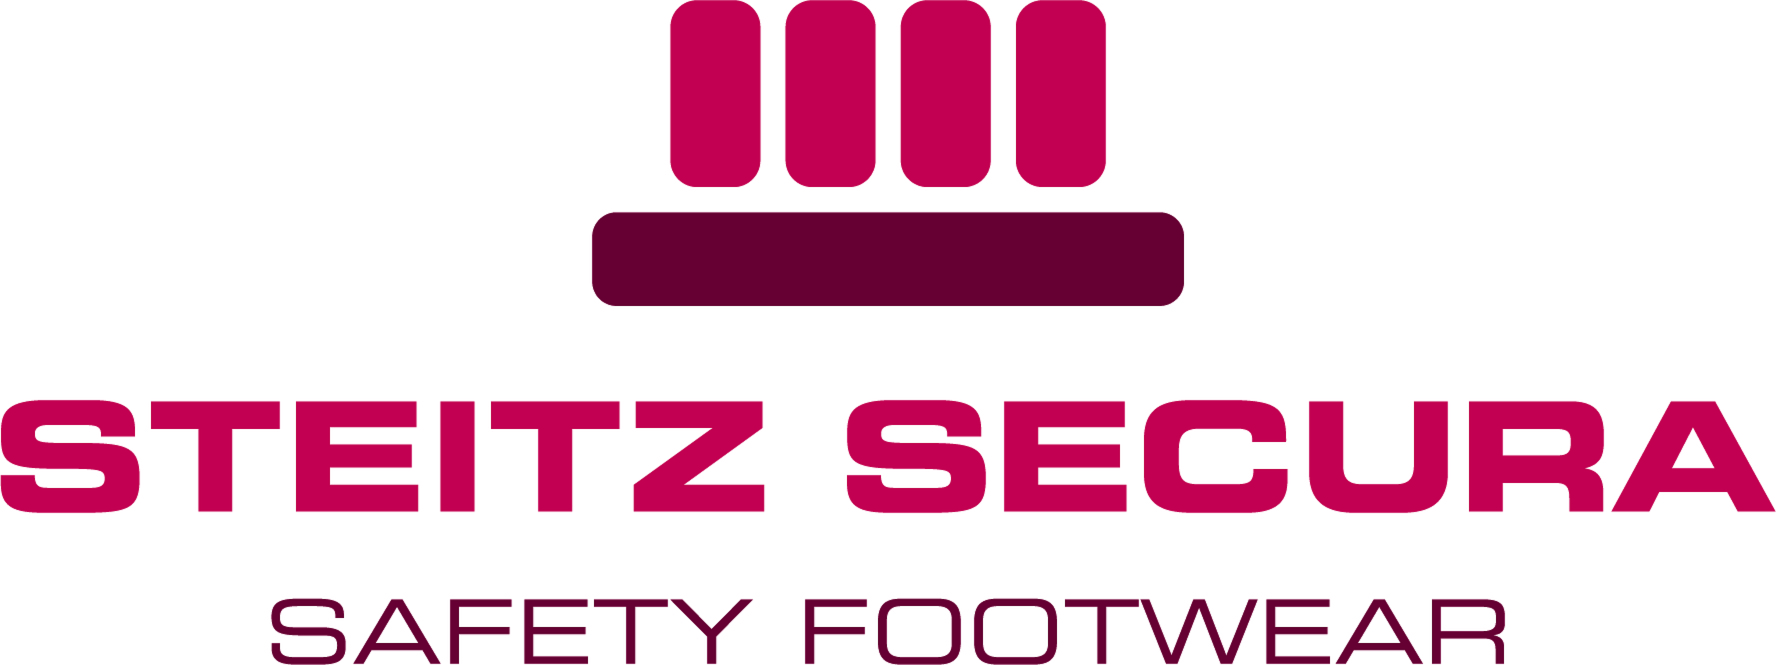 Louis STEITZ SECURA GmbH + Co. KG